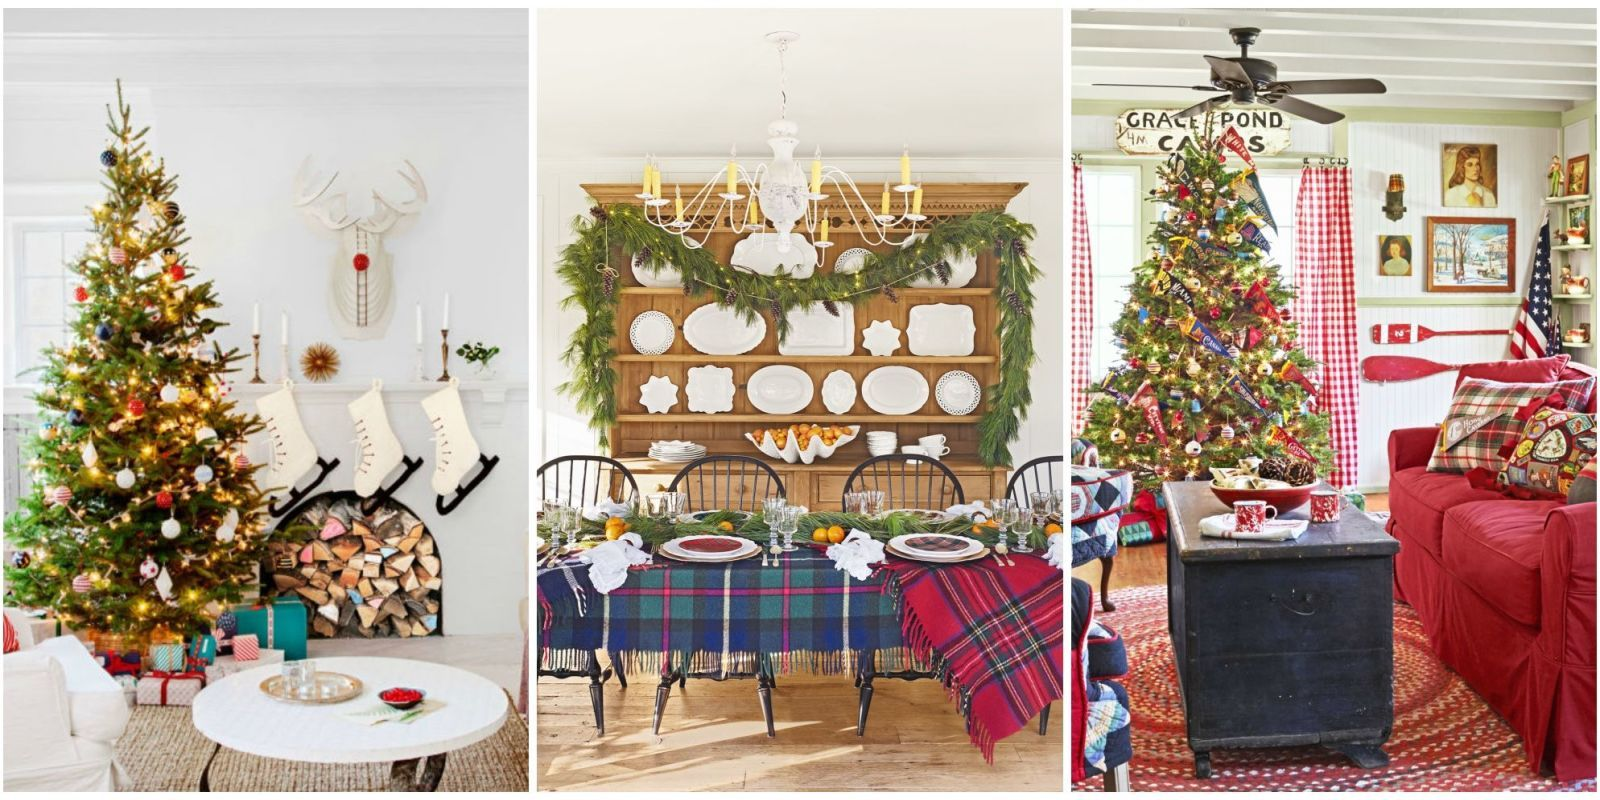 These Deck The Halls House Tours Are Sure To Spark Holiday Cheer.